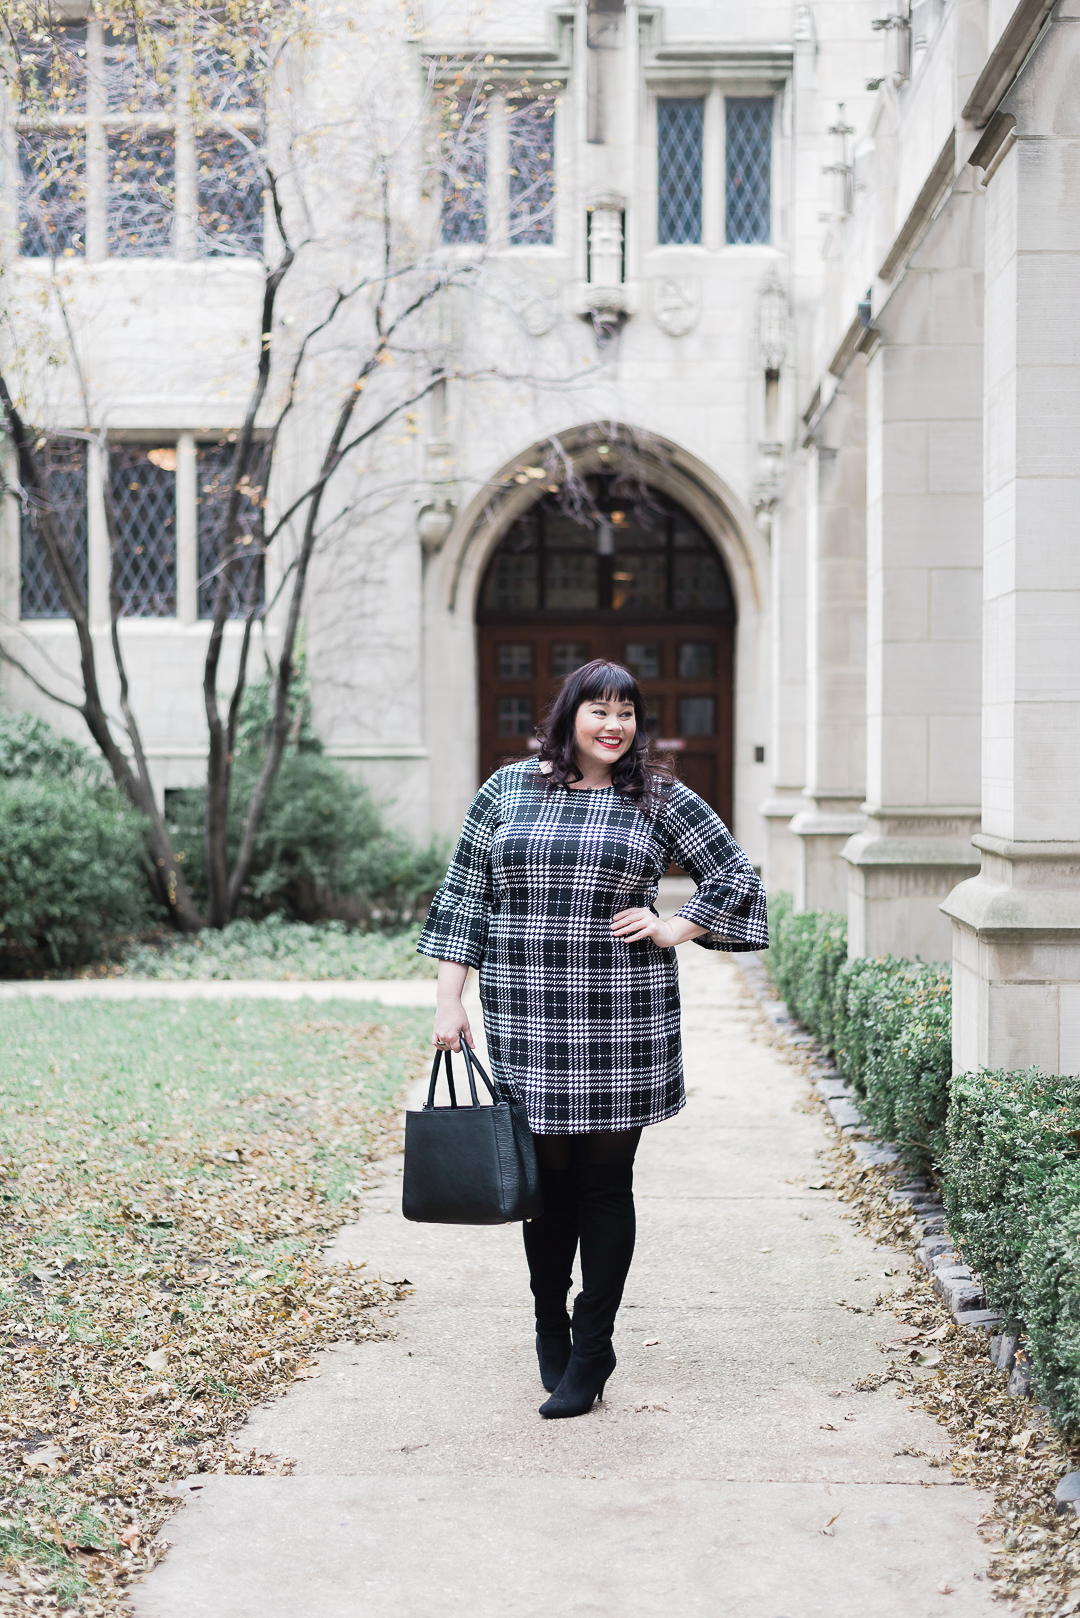 Just My Size Plus Size Dresses, Plaid, Bell sleeves, Plus Size Style, Plus Size Fashion, Style Plus Curves, Chicago Blogger, Chicago Plus Size Blogger, Plus Size Blogger, Amber McCulloch